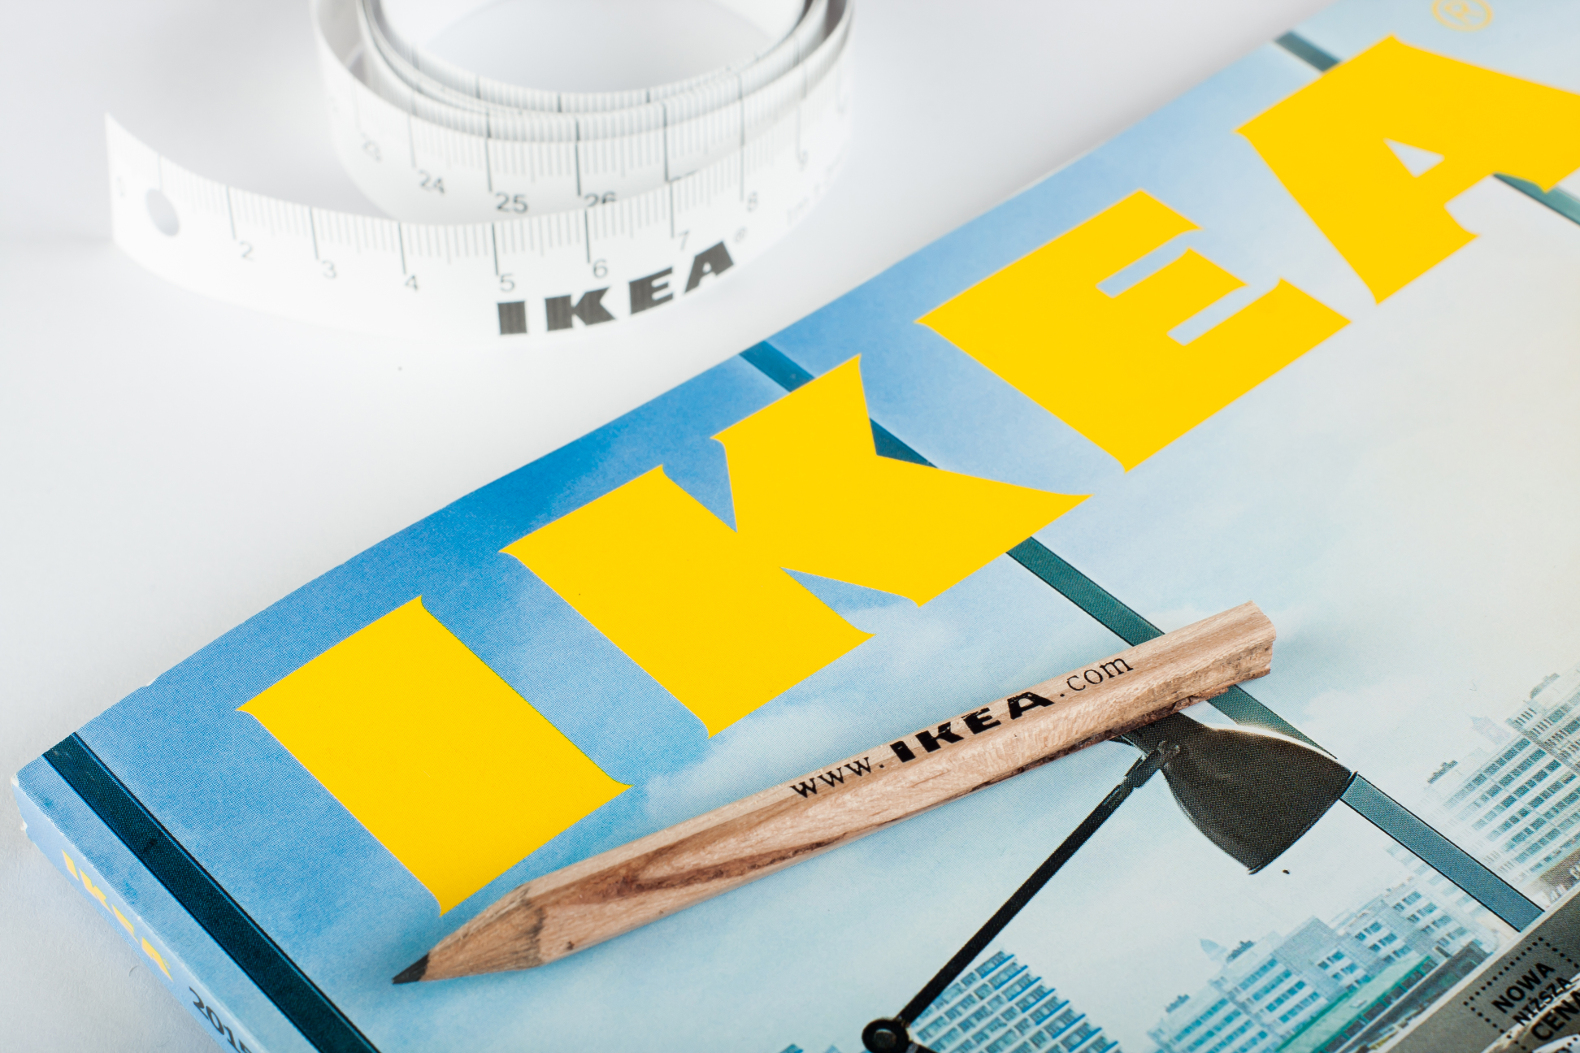 - The entire IKEA range of products work together like an overarching system. Their Swedish heritage and charm reflects in the choice of colours, visuals, naming and style —all of which reinforces the identity.